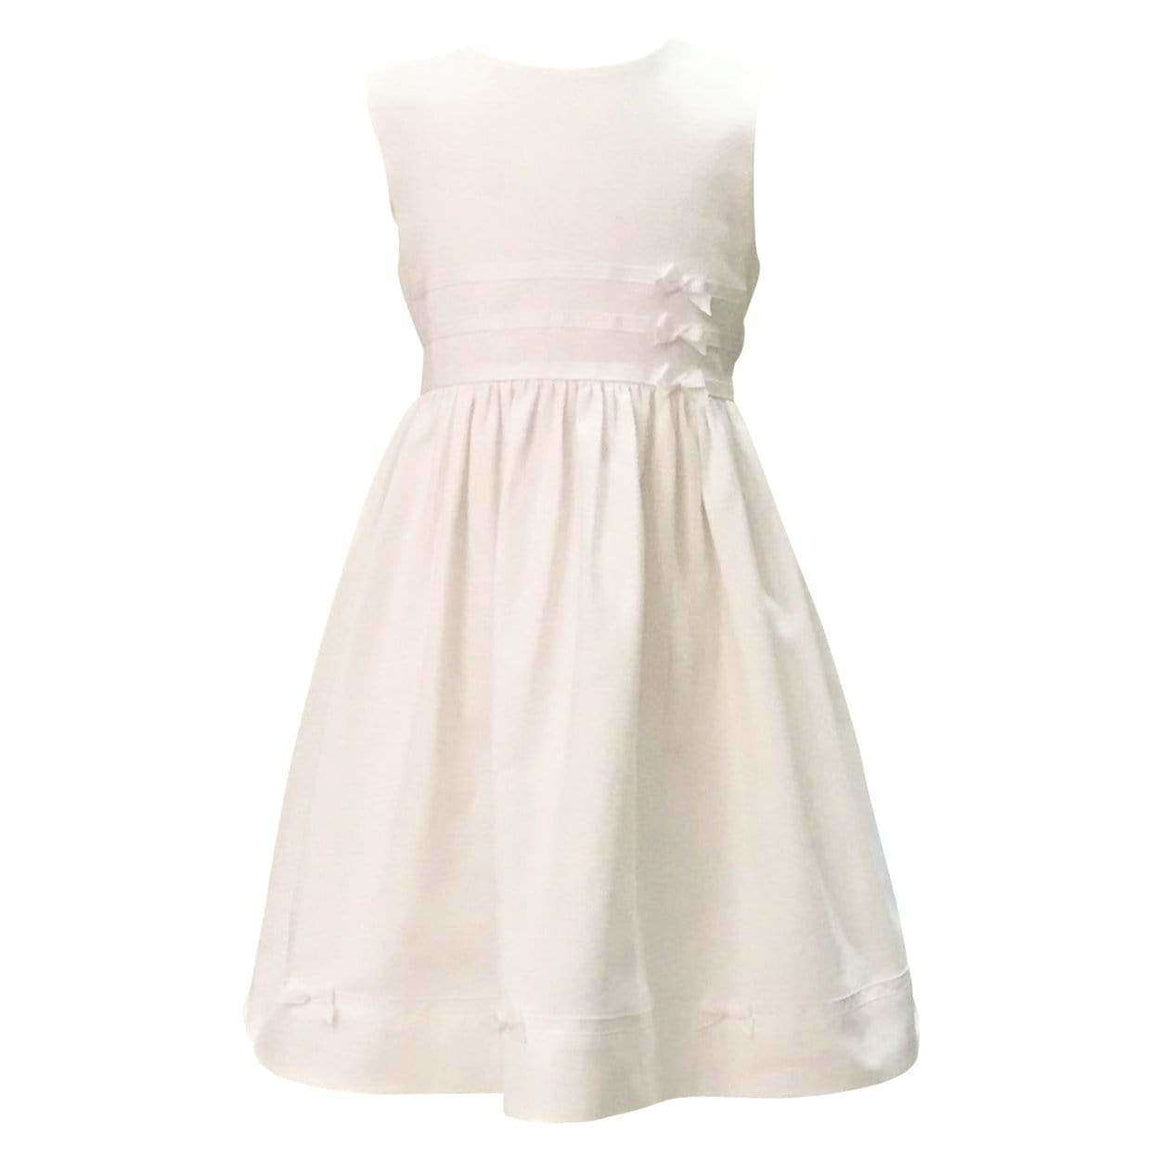 Adrian East online Classic White Pique Ribbon Dress